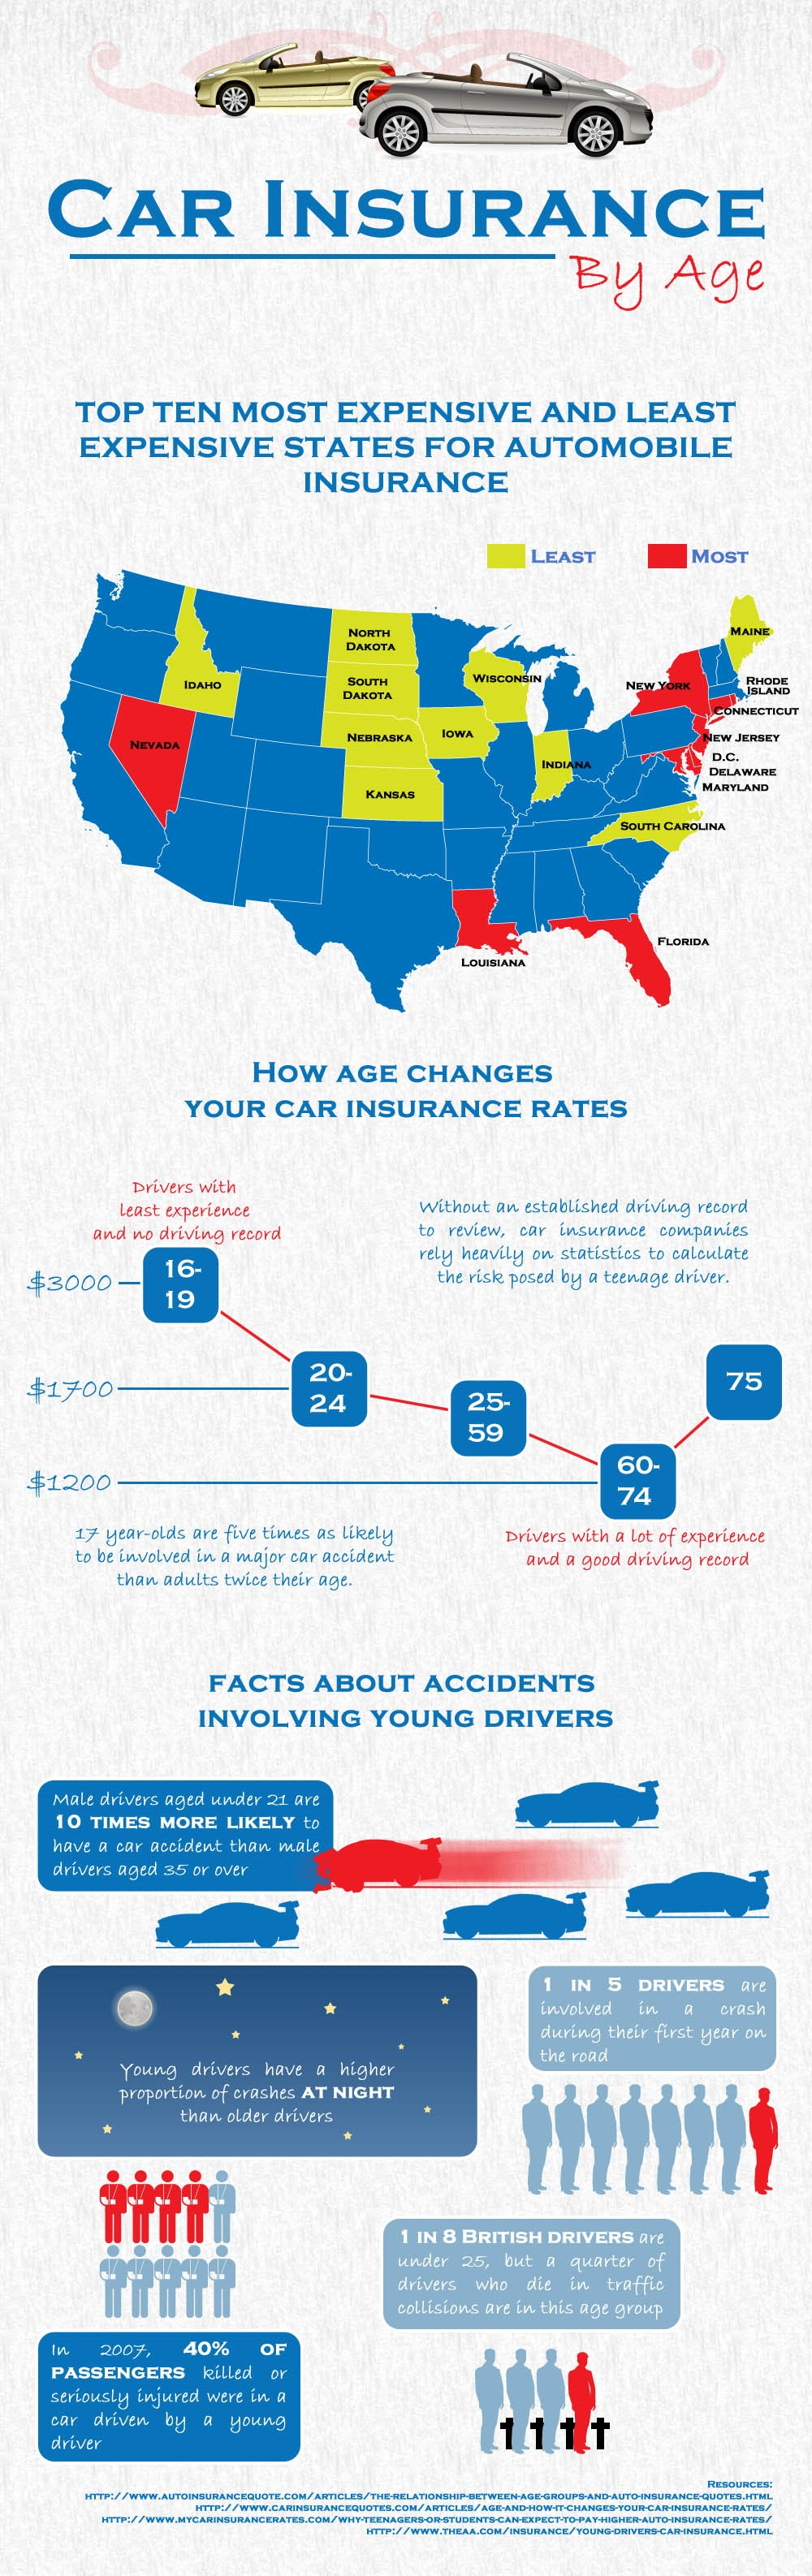 car-insurance-rates-by-age